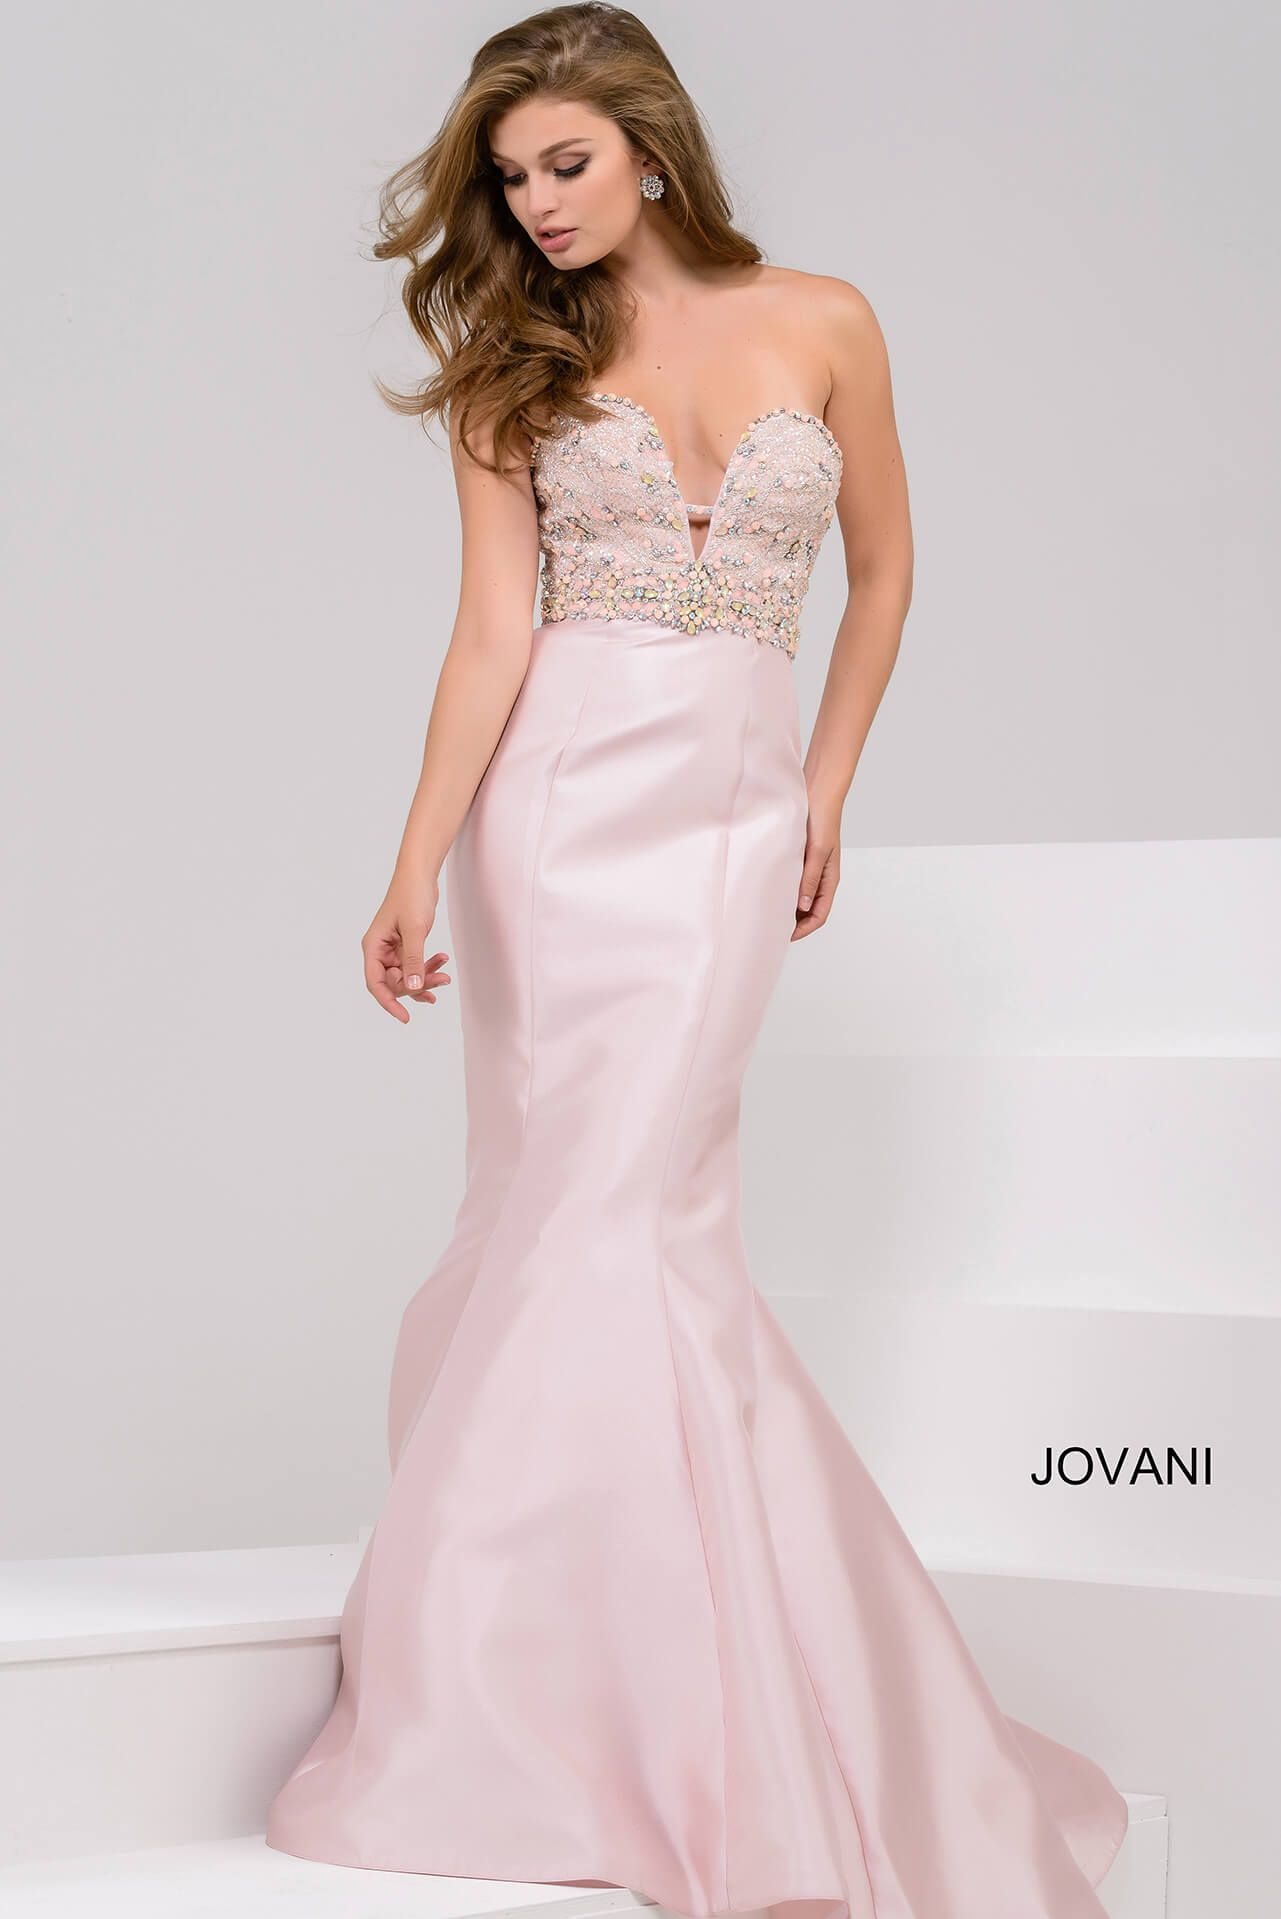 JOVANI BLUSH EMBELLISHED BODICE MERMAID GOWN. #jovani #cloth ...